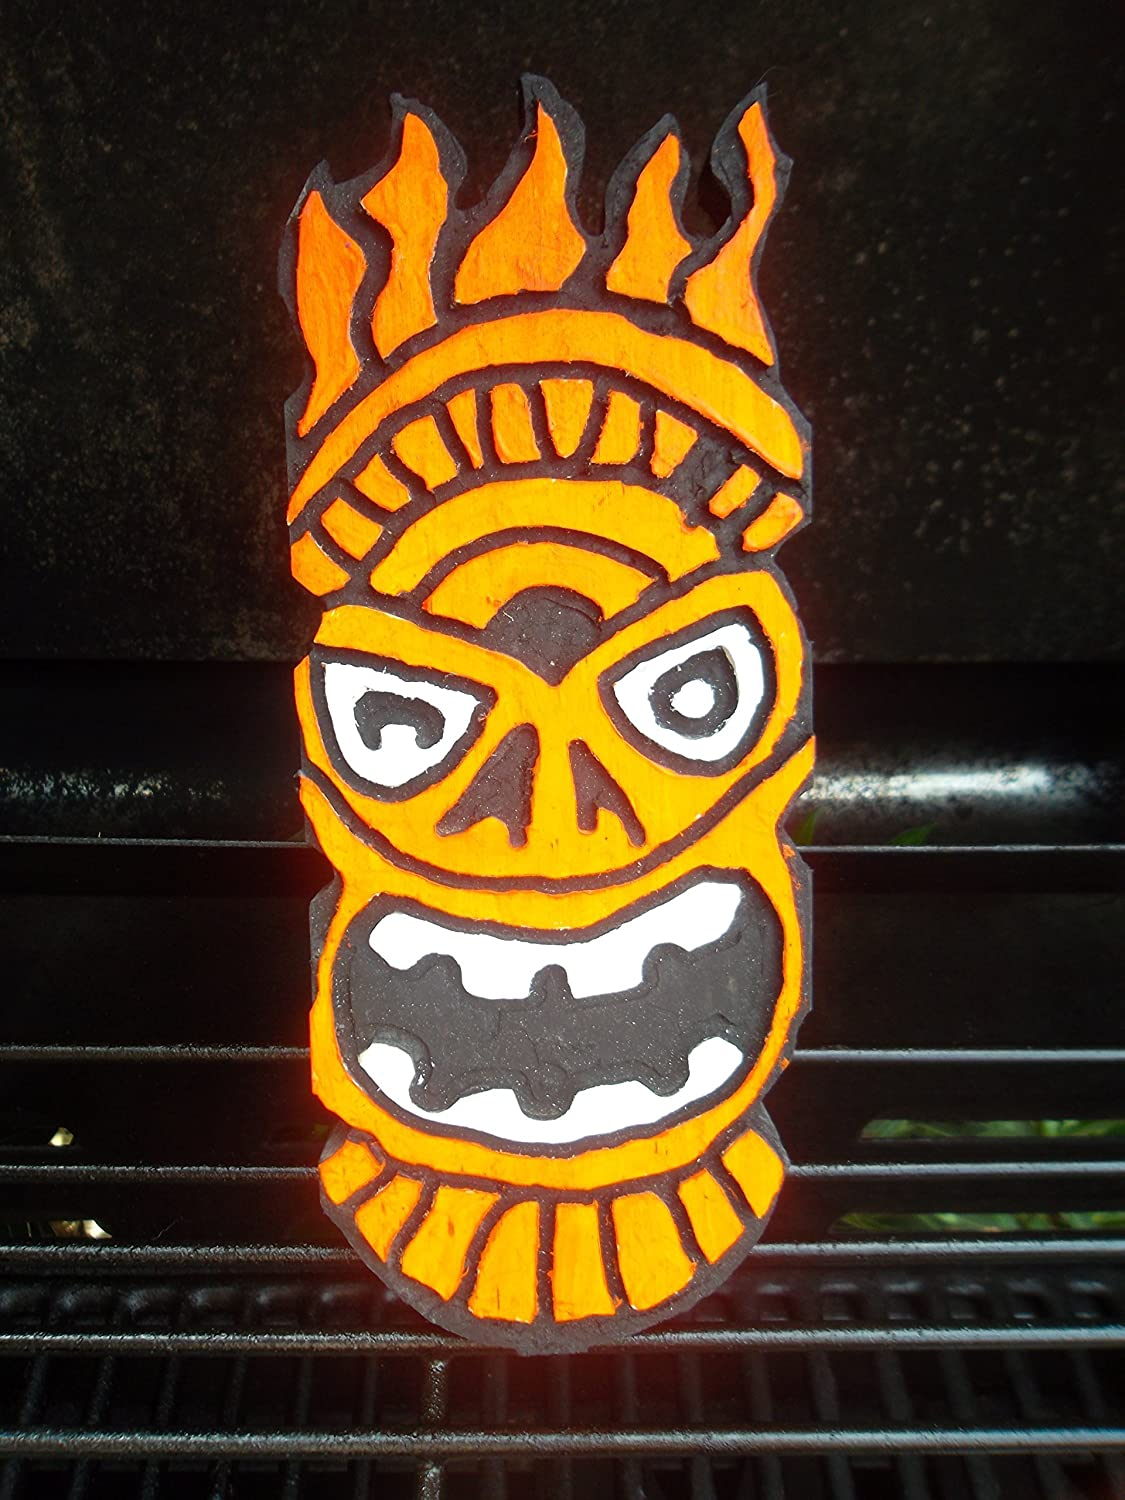 Amazon.com: Fire Wooden Tiki Wall Art, Routed & Painted by Hand ...